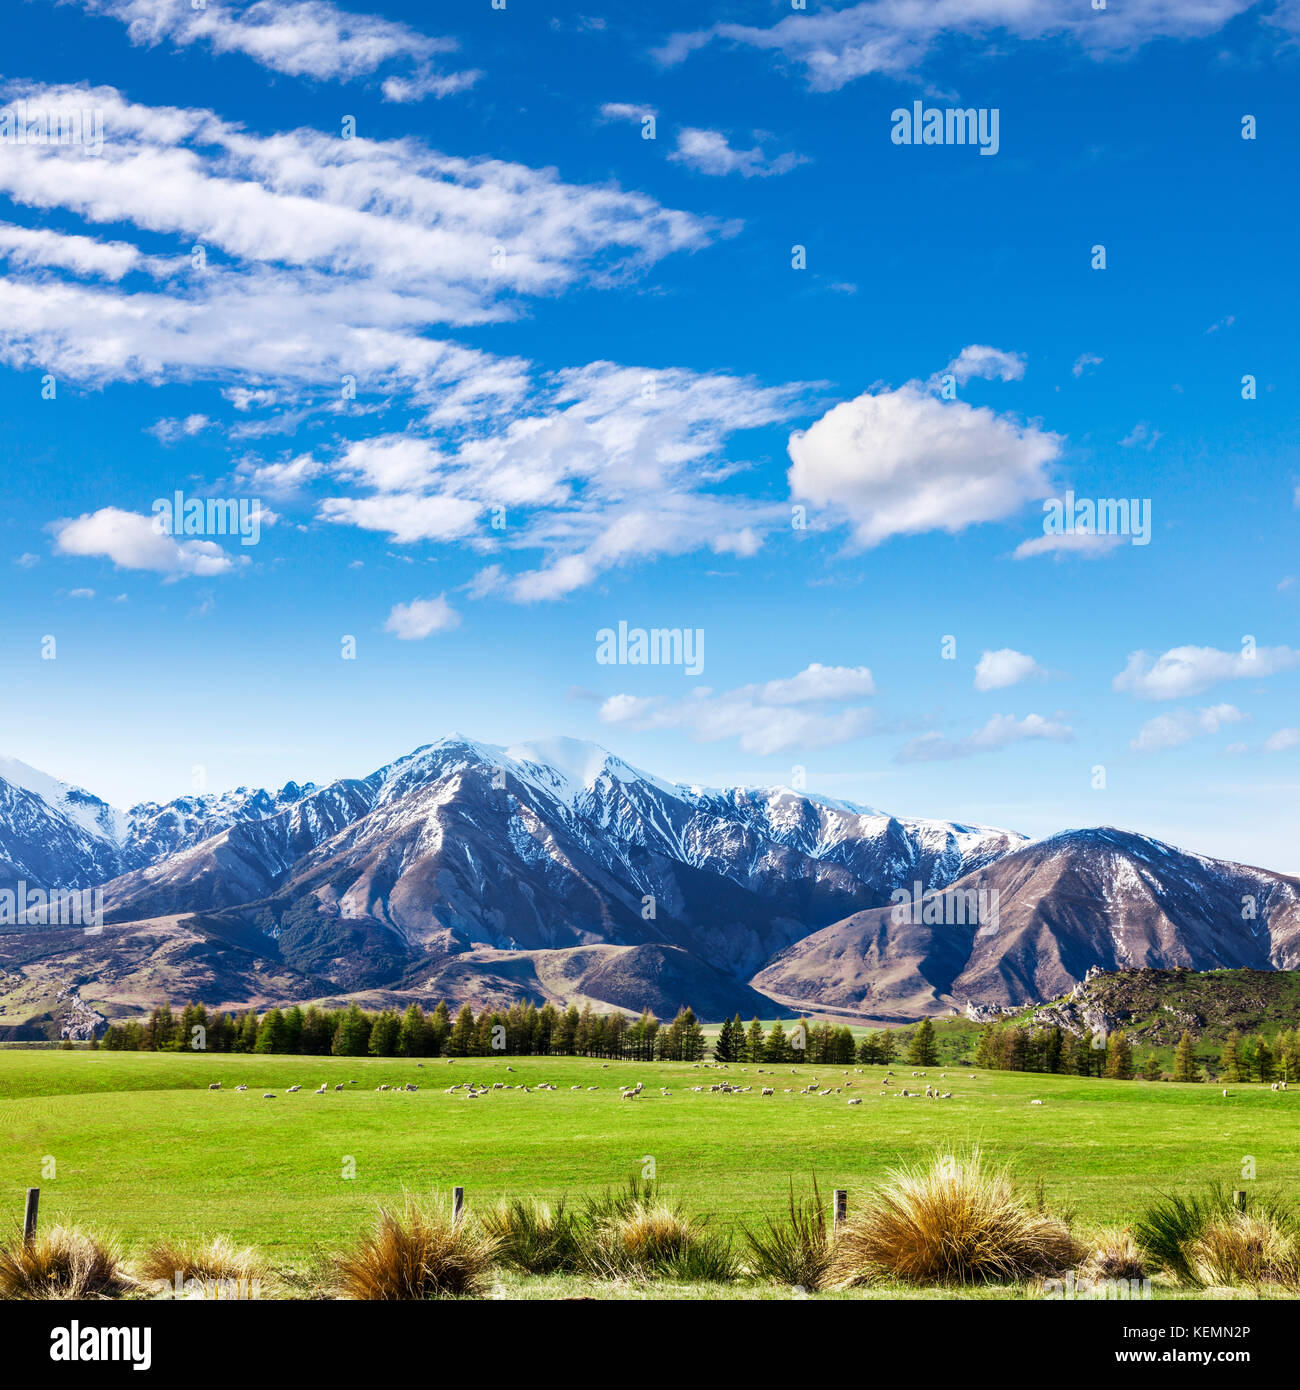 Canterbury New Zealand landscape, with tussock, pasture, sheep, mountains and blue sky. - Stock Image